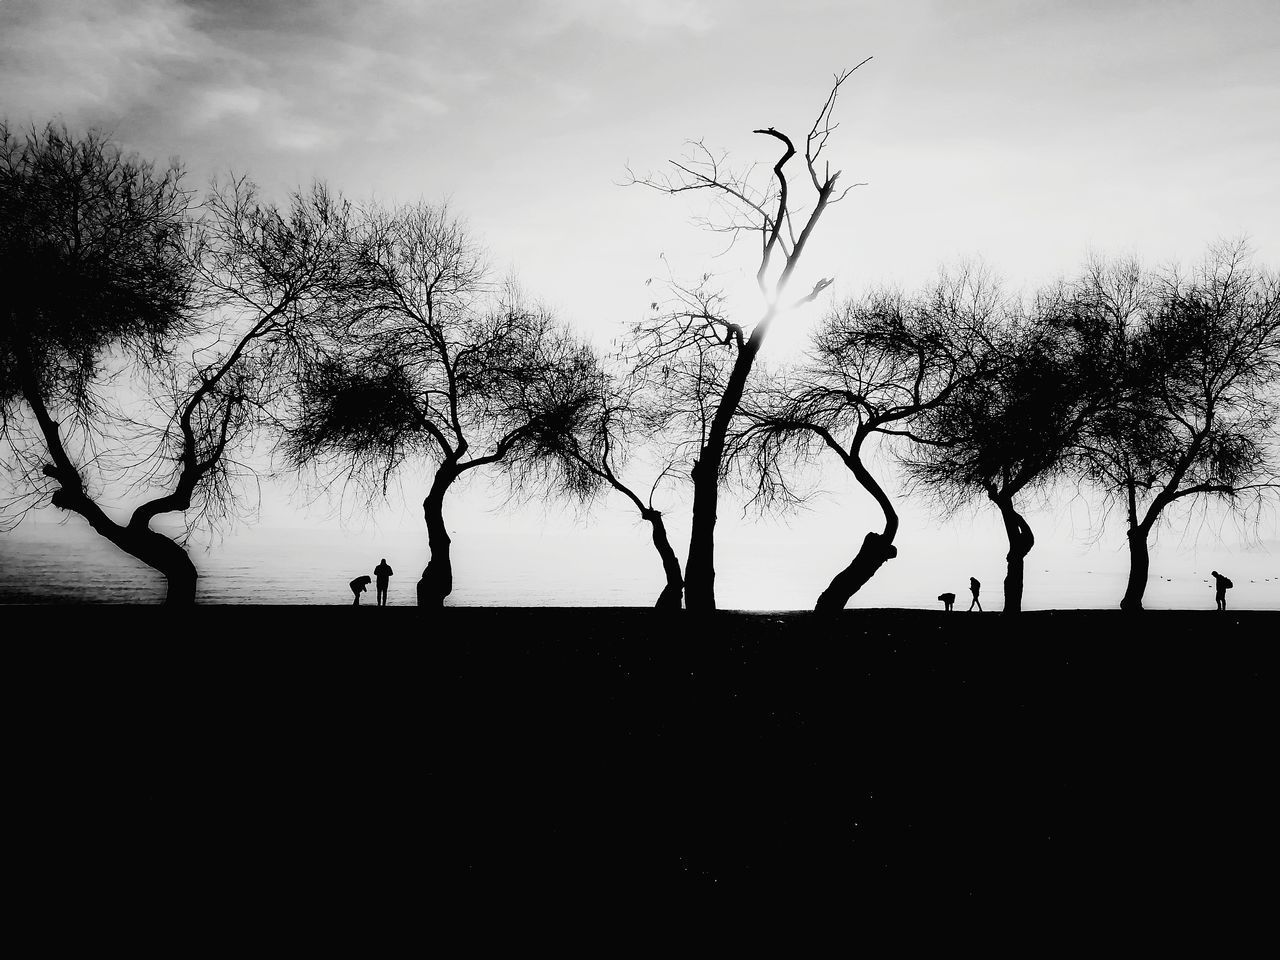 silhouette, tree, sky, plant, nature, group of people, bare tree, lifestyles, real people, men, cloud - sky, people, branch, outdoors, beauty in nature, leisure activity, tranquility, tranquil scene, women, land